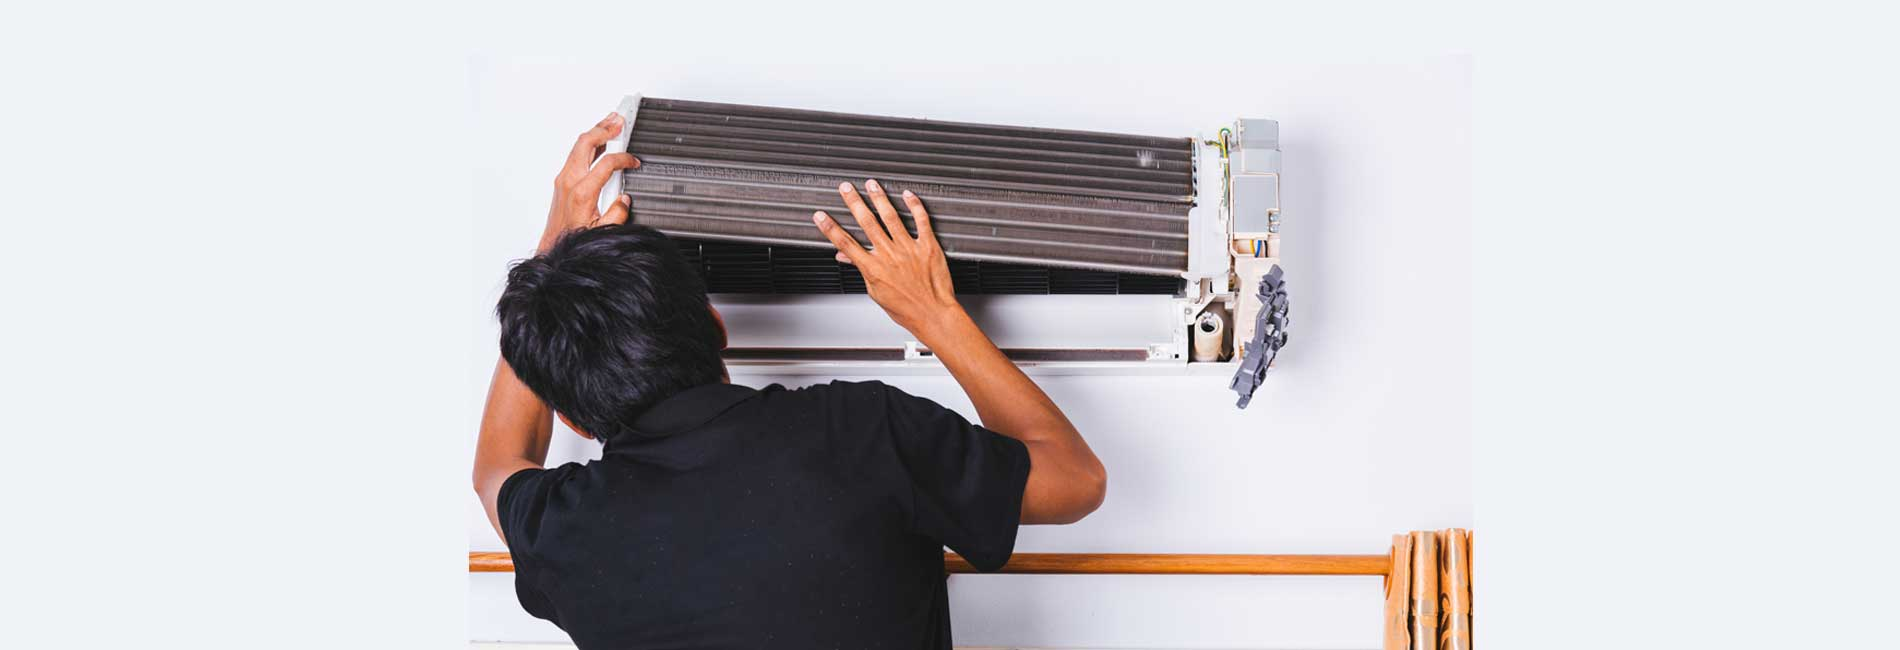 Air Condition Service in Peerkankaranai